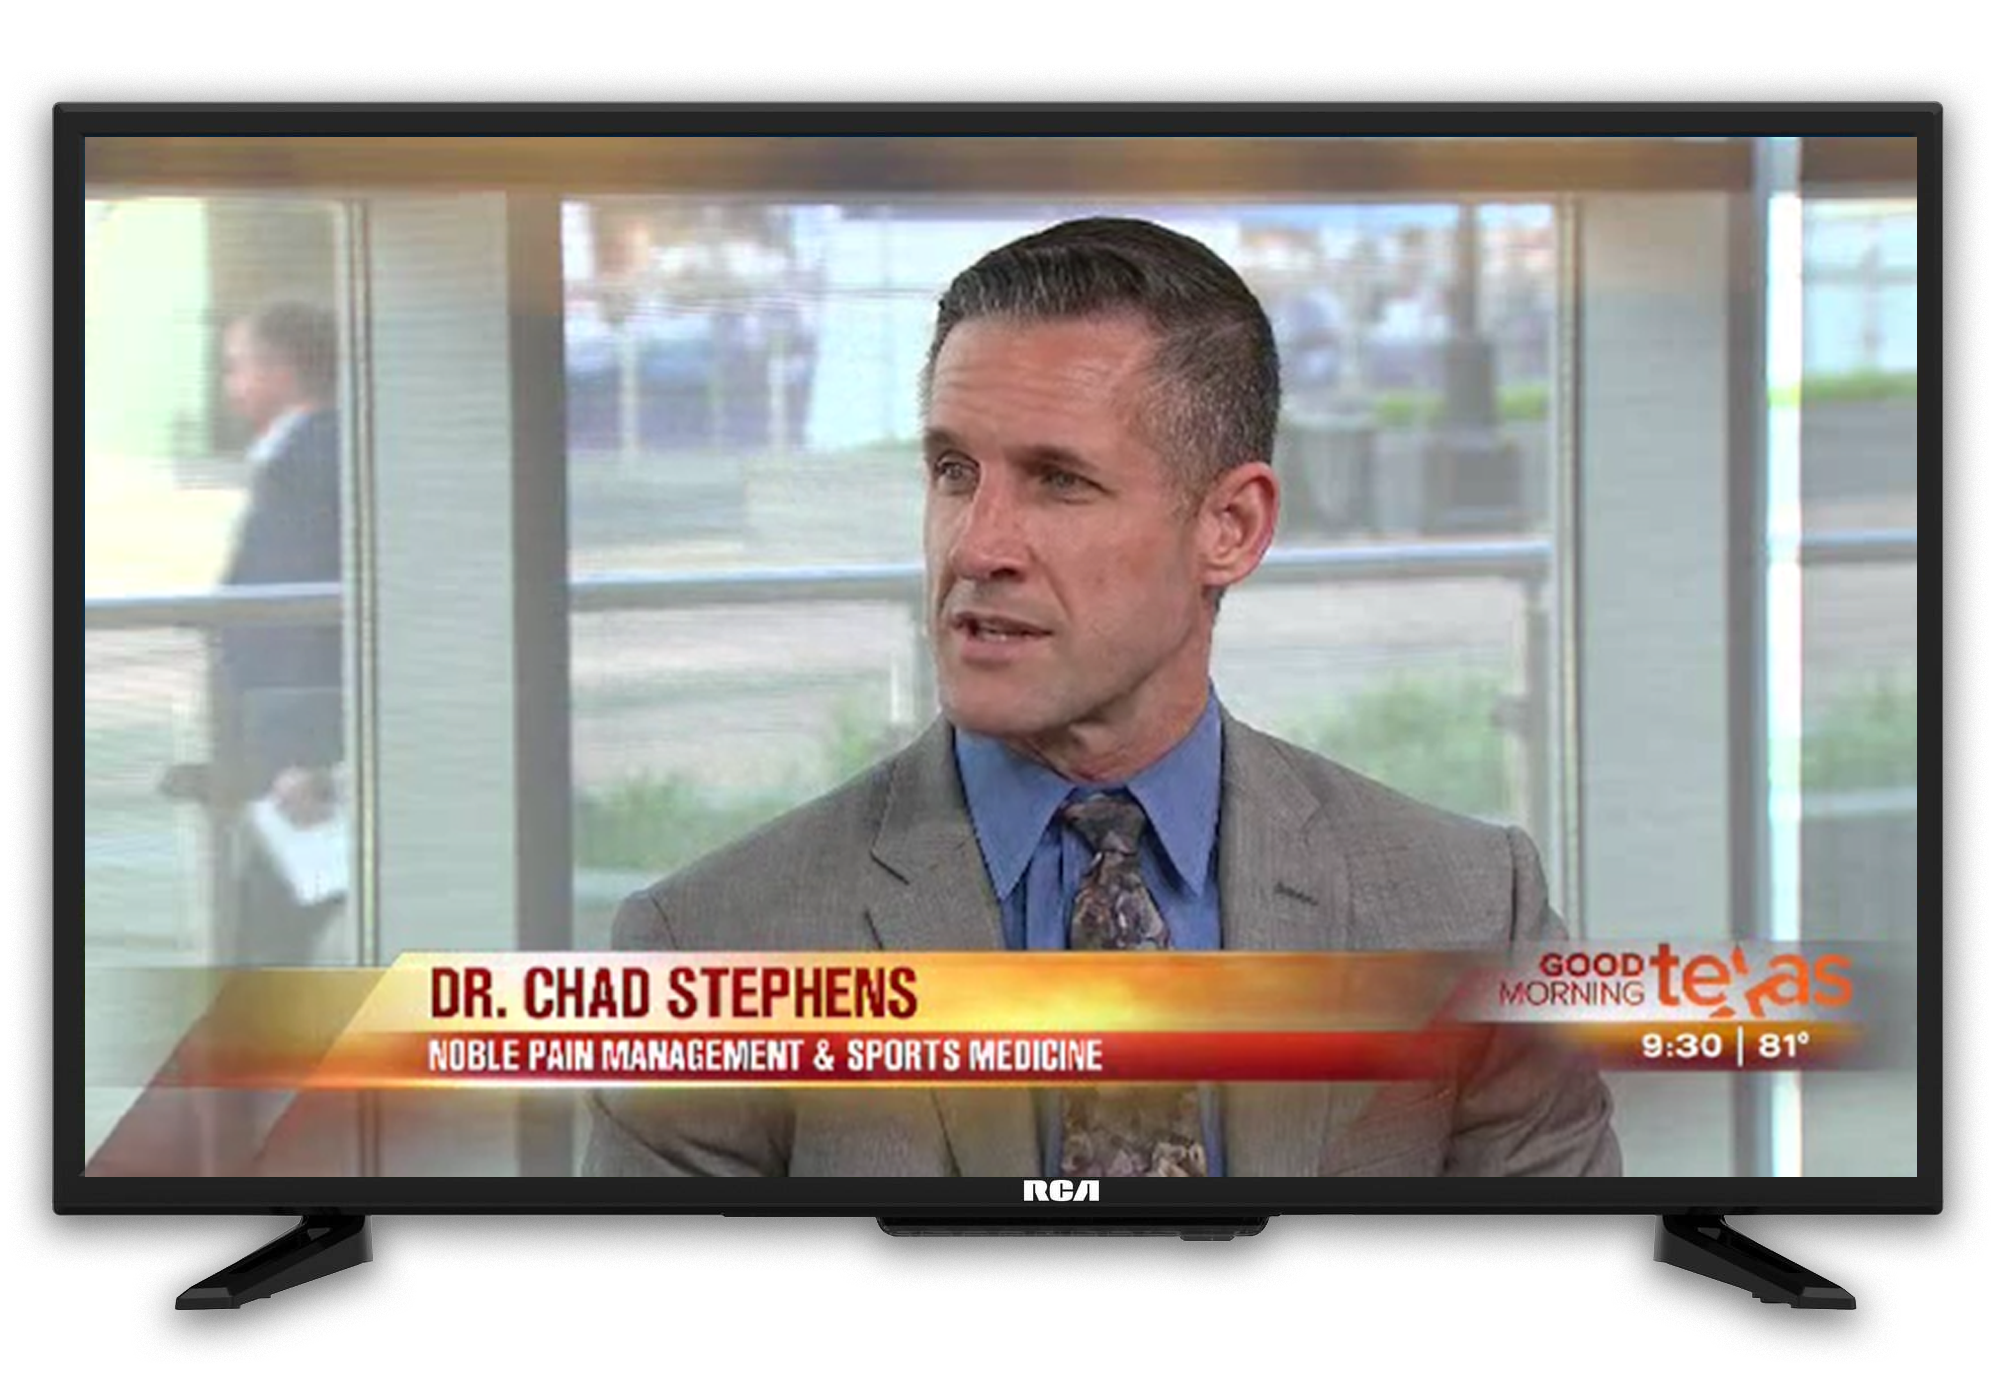 EXPERTISE IN SPORTS AND PAIN MEDICINE   for live interviews and source material   Areas of expertise